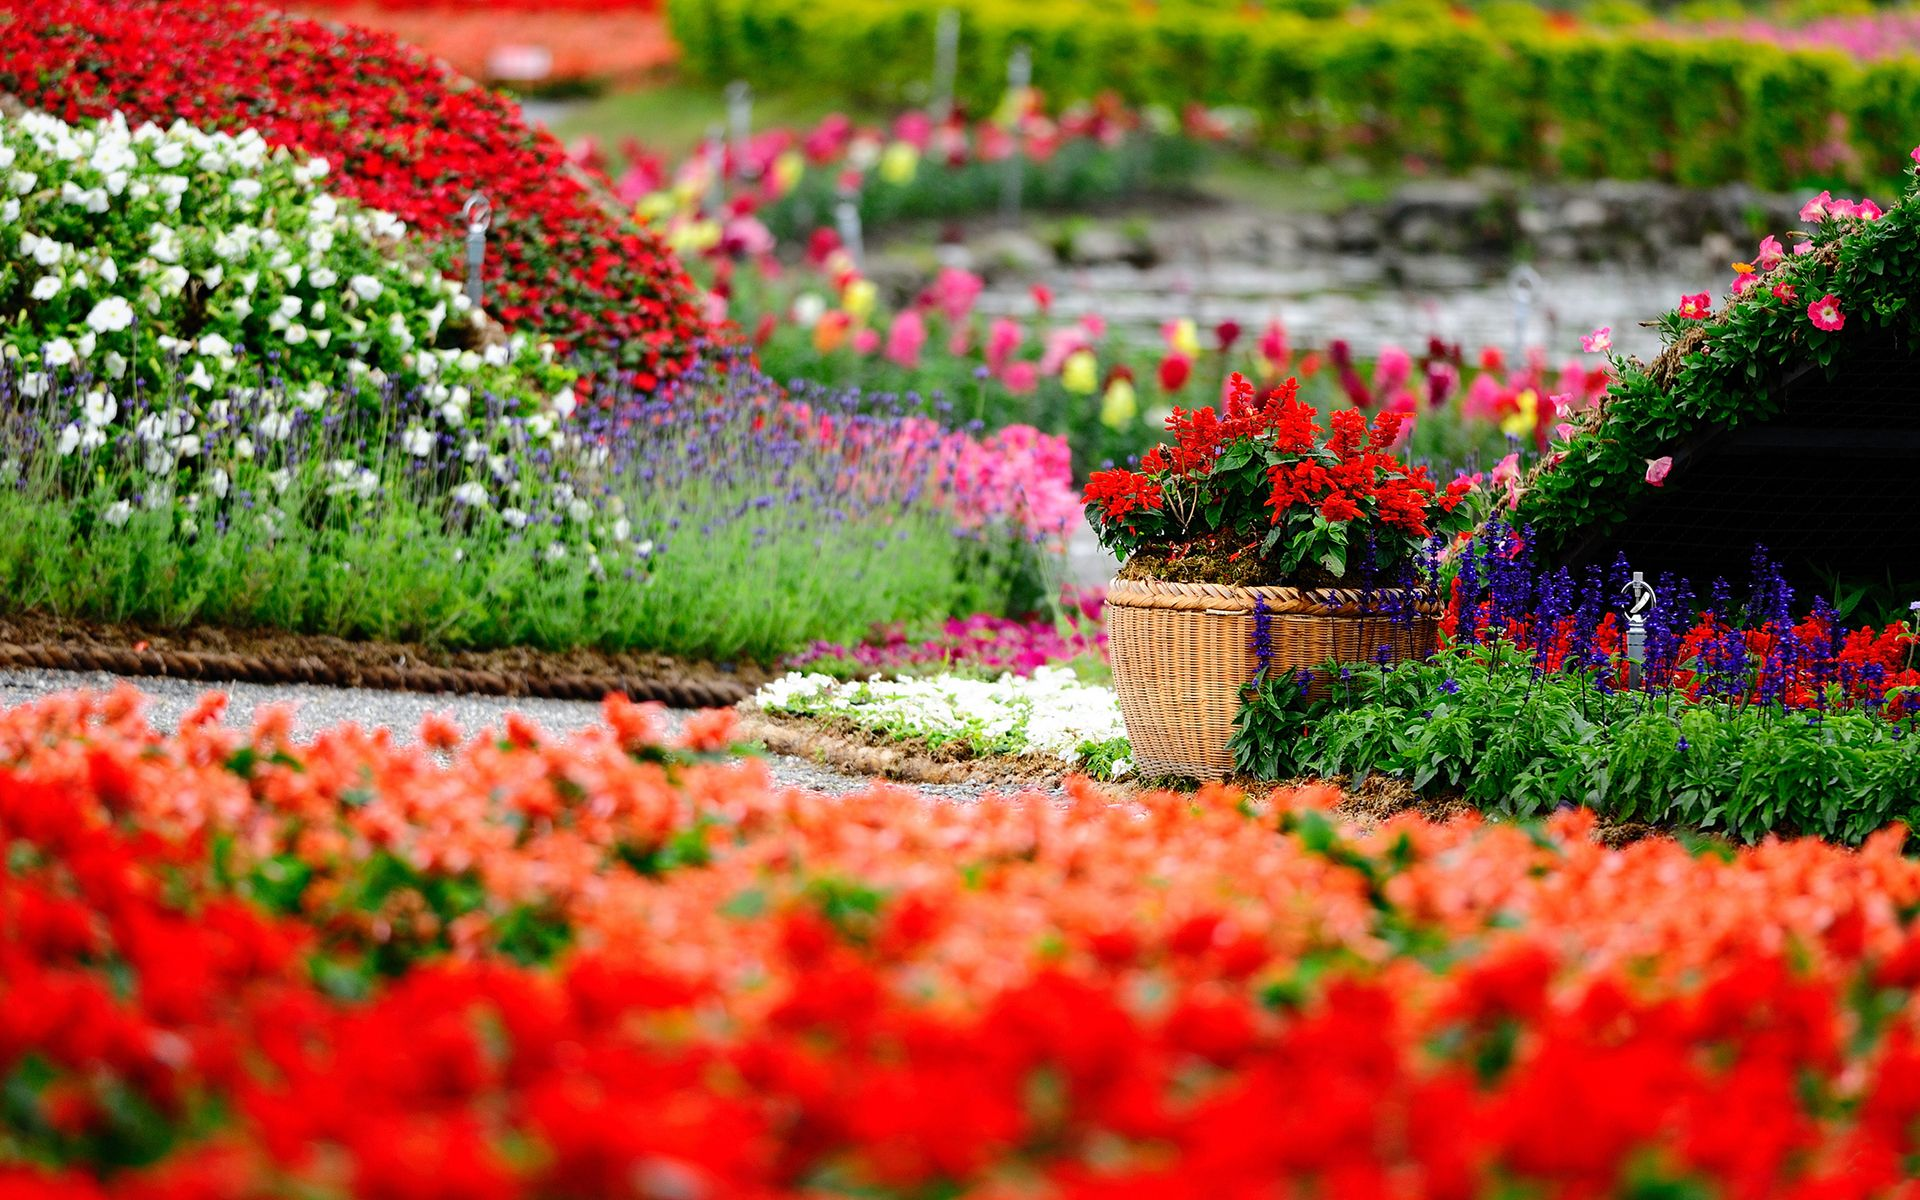 Colorful flower park wallpaper wide wallpaper beautiful images beautiful flowers wallpapers beautiful flowers desktop wallpapers 1369 and wallpapers izmirmasajfo Image collections